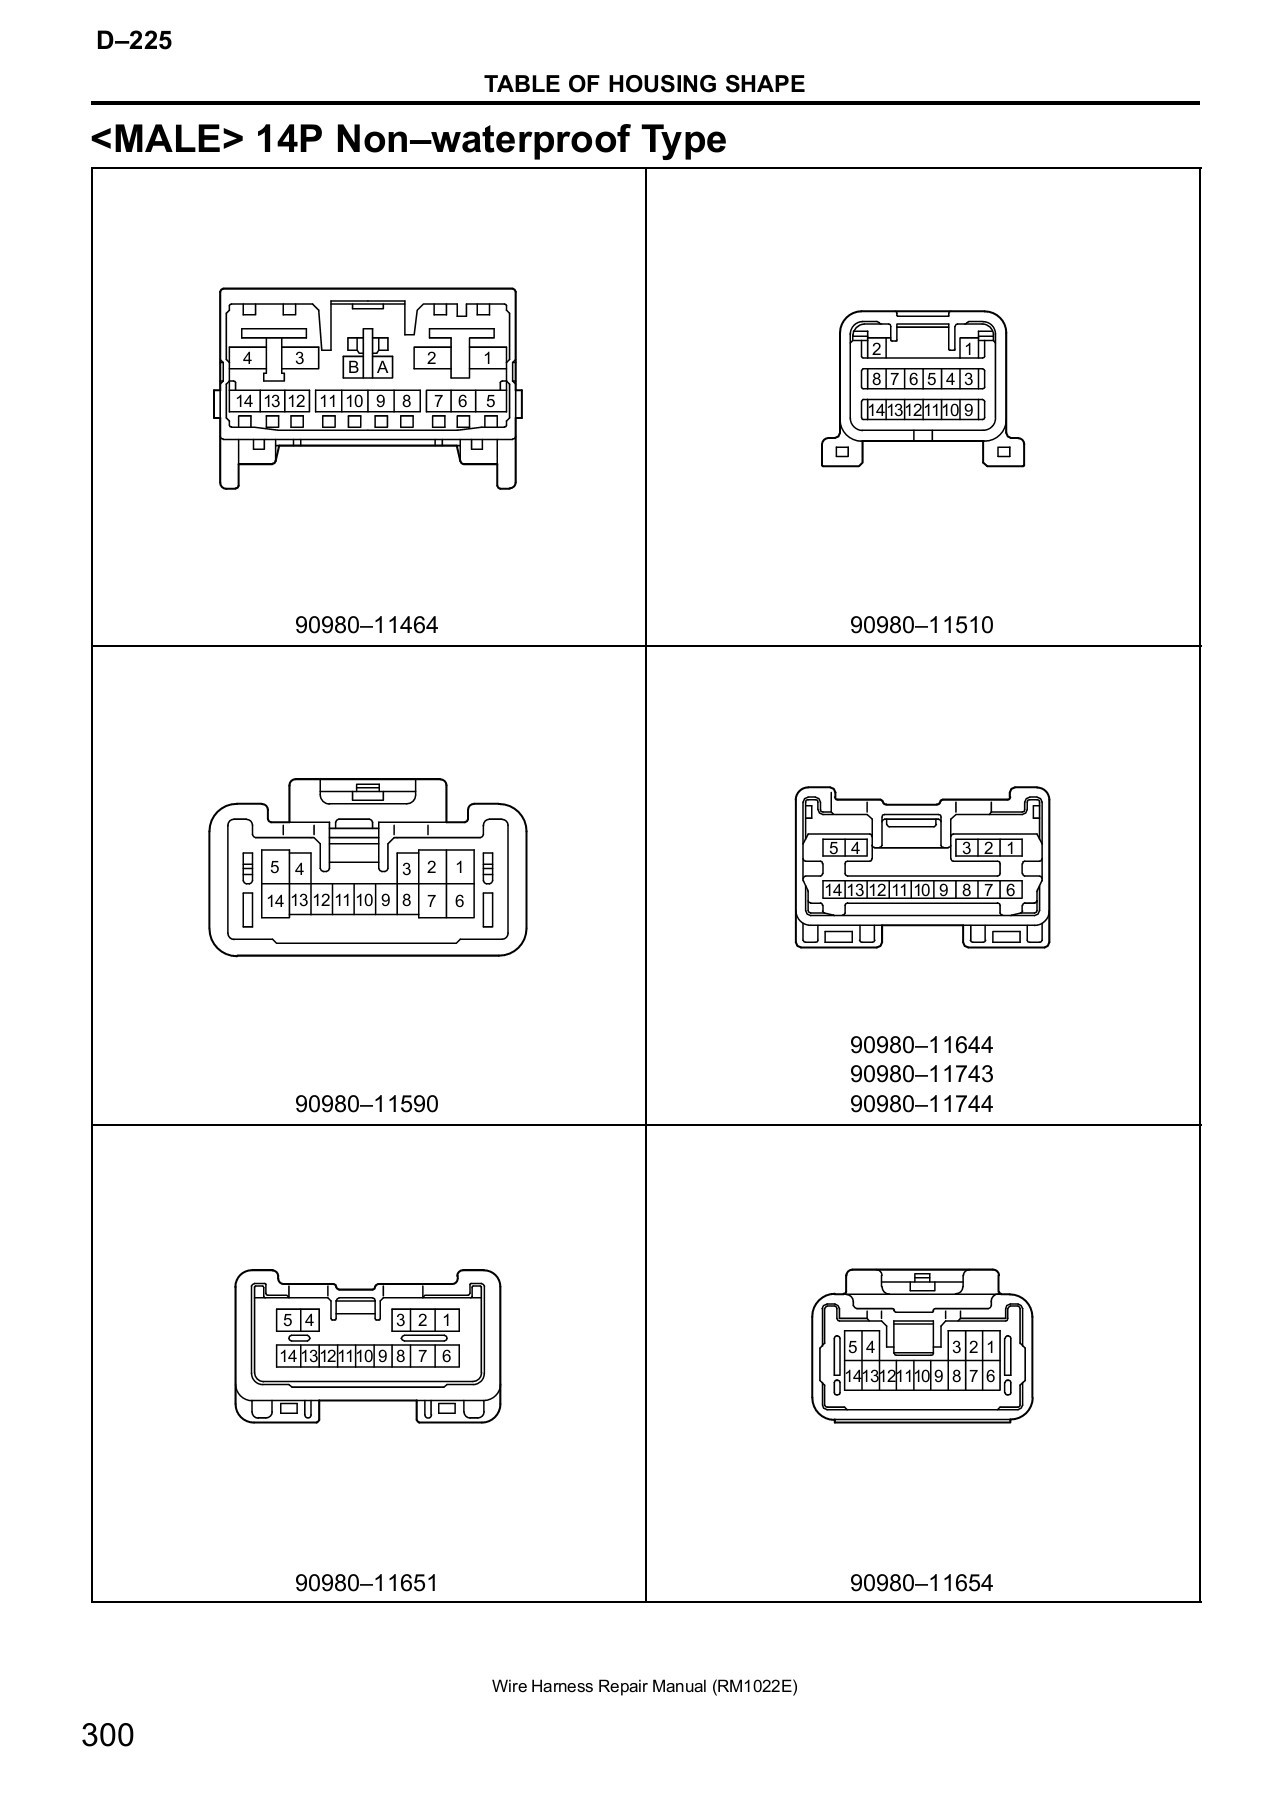 hight resolution of toyota wiring repair manual pdfdrive com pages 301 350 text version fliphtml5